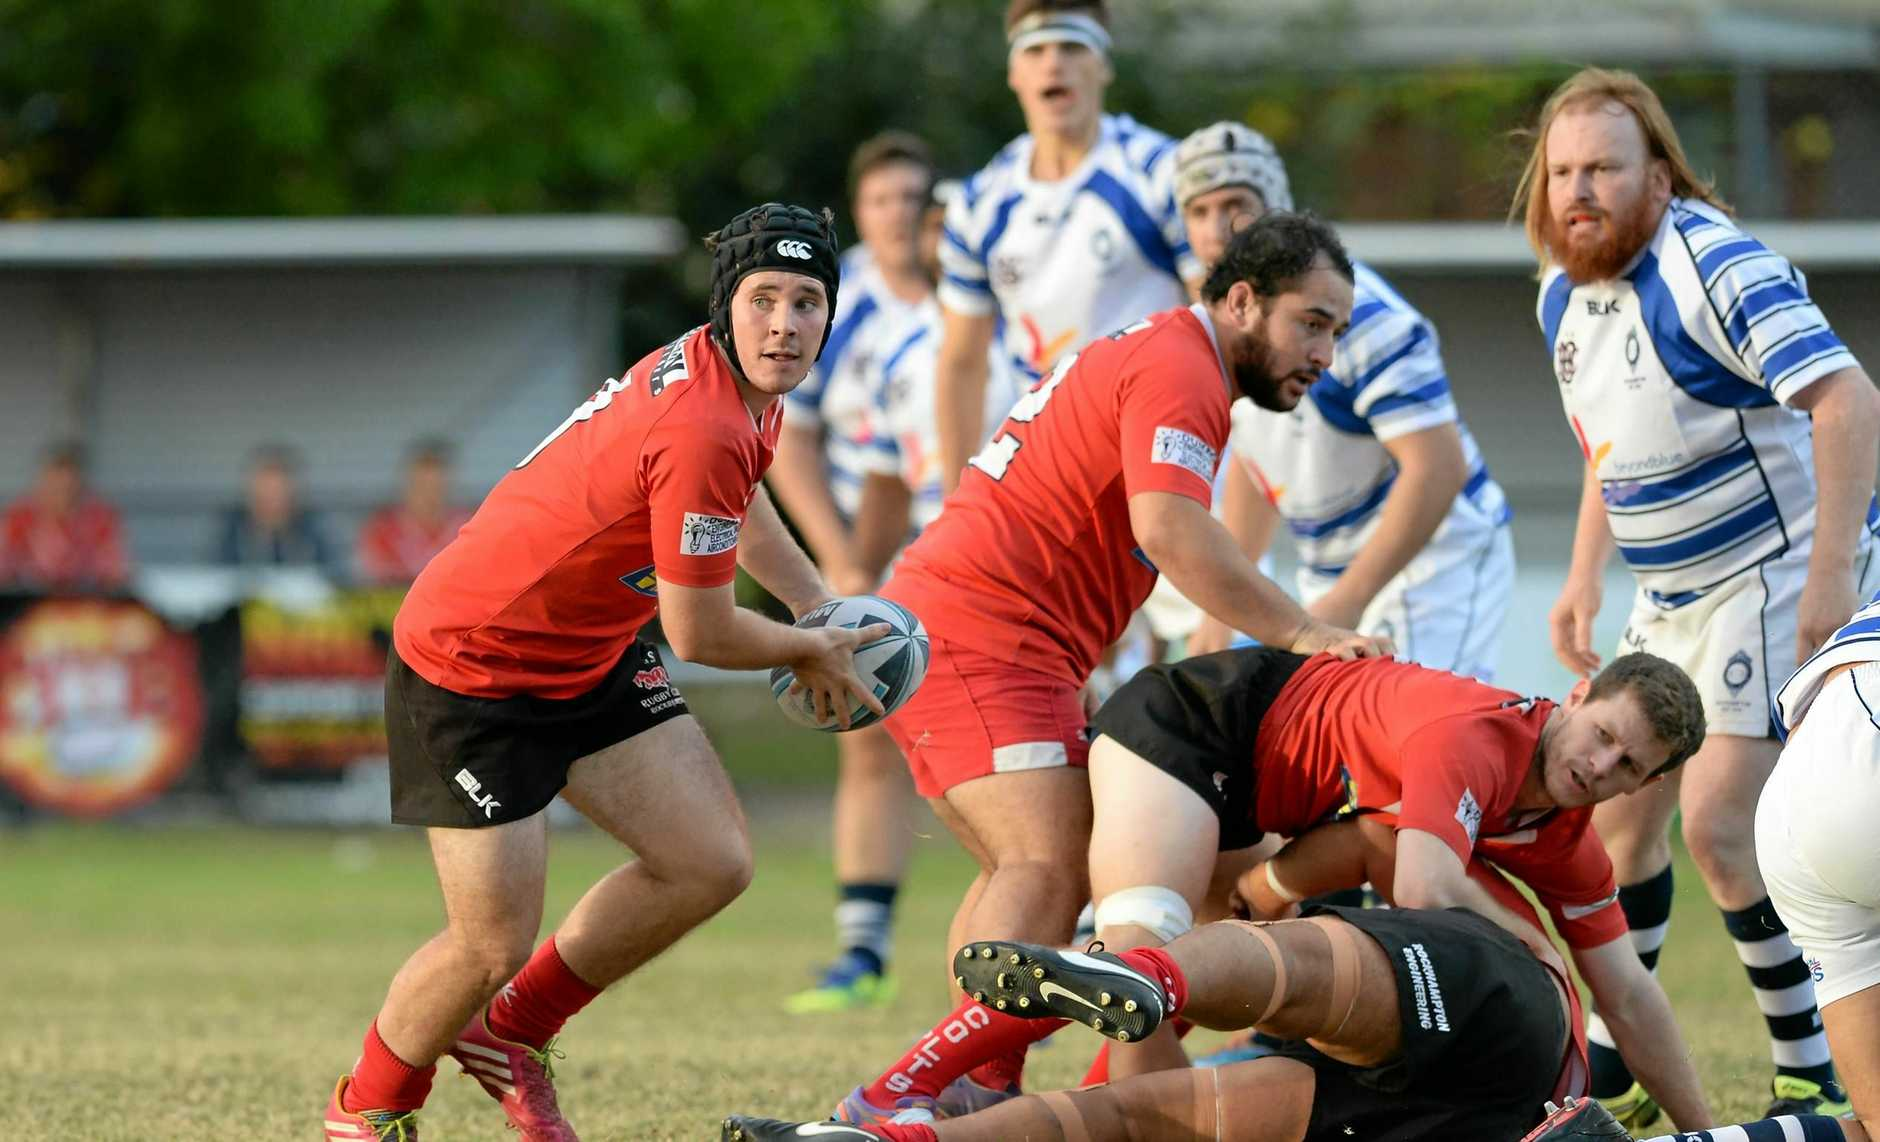 Colts player R Webley in the Rugby Union game between Brothers and Colts at Victoria Park.   Photo: Chris Ison / The Morning Bulletin